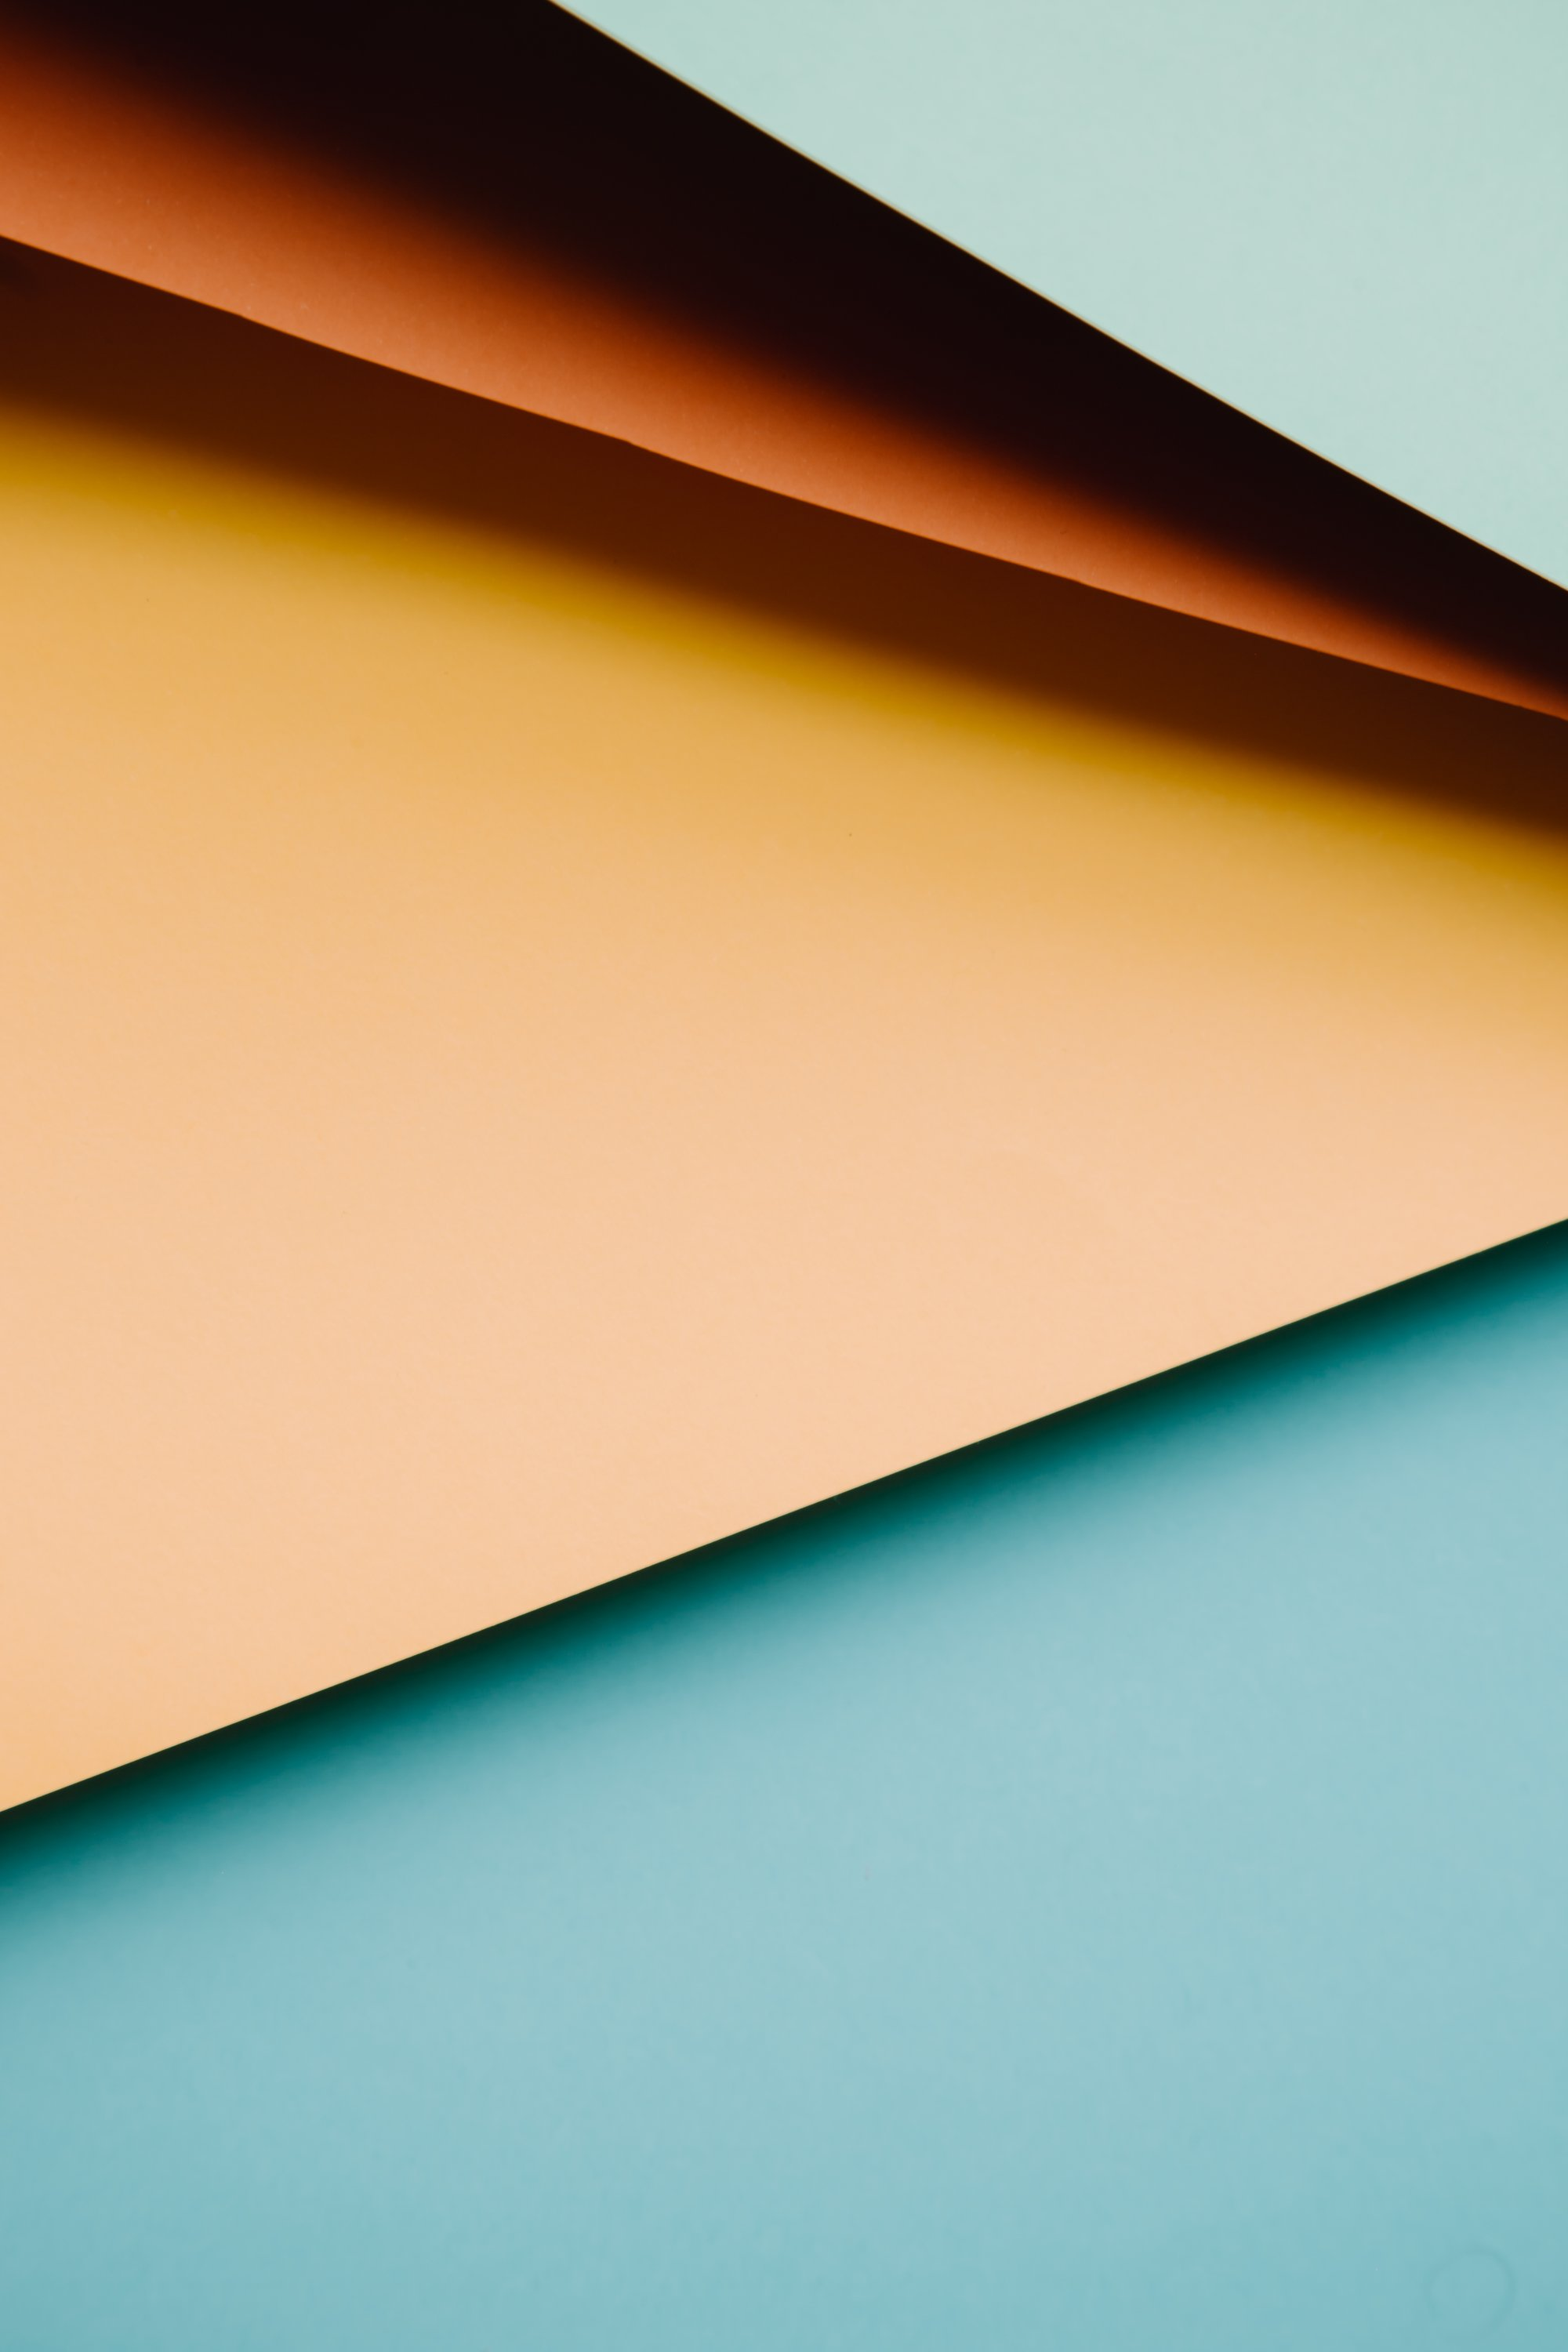 abstract image of colored paper creating horizontal lines 彩色纸的抽象图像--创建水平线